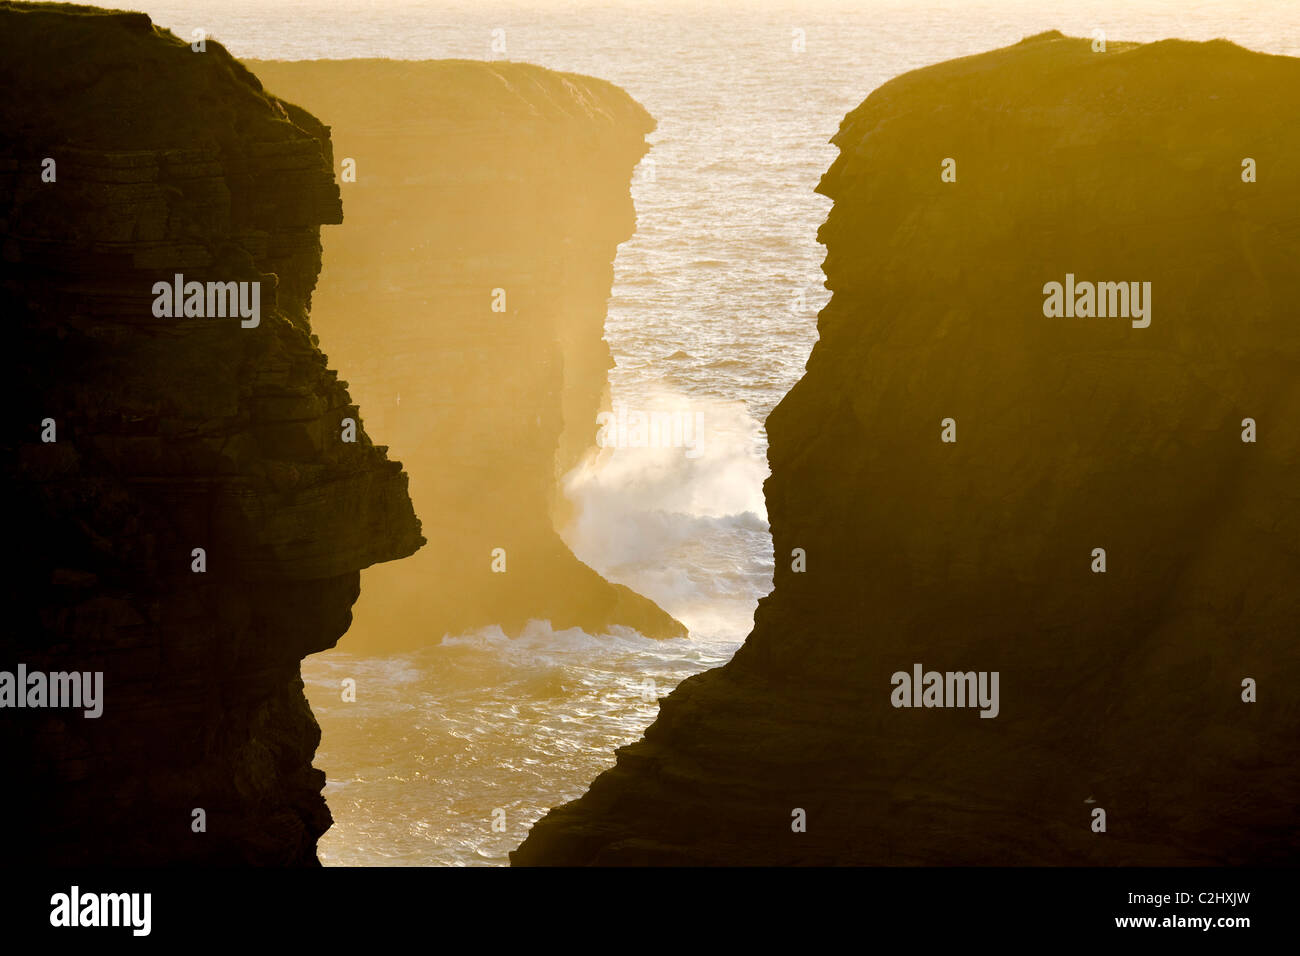 Sunset illuminates a chasm in the atlantic cliffs near Loop Head, County Clare, Ireland. Stock Photo